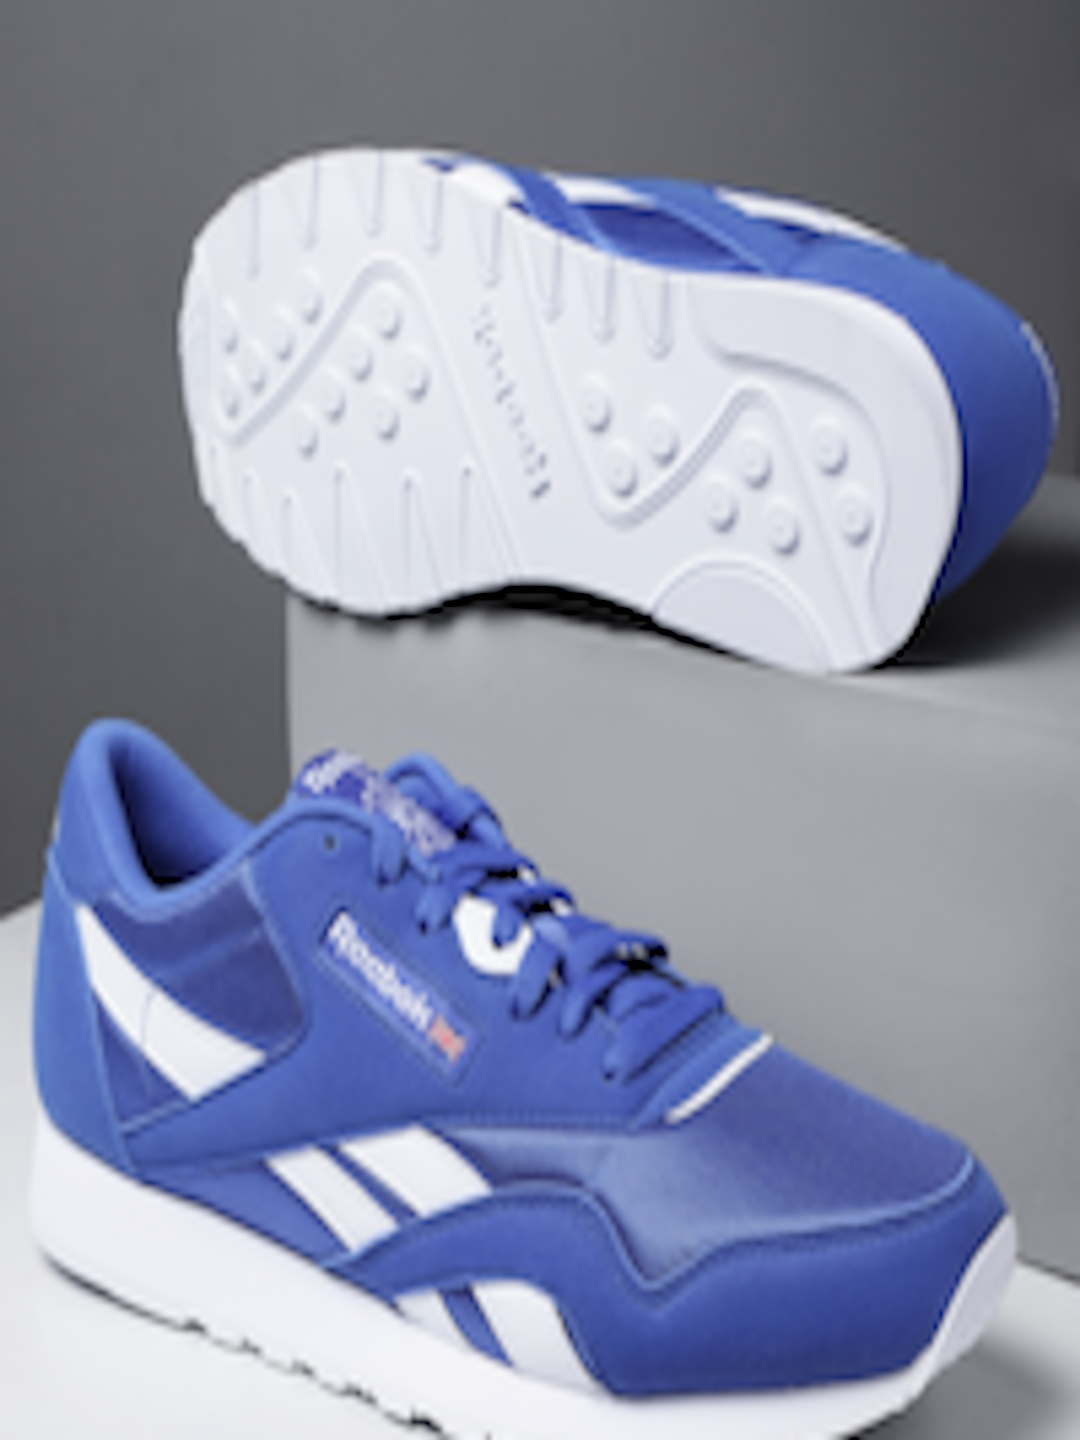 26cb4ecbc23b6 Buy Reebok Classic Unisex Blue Nylon Color Sneakers - Casual Shoes for  Unisex 8497873